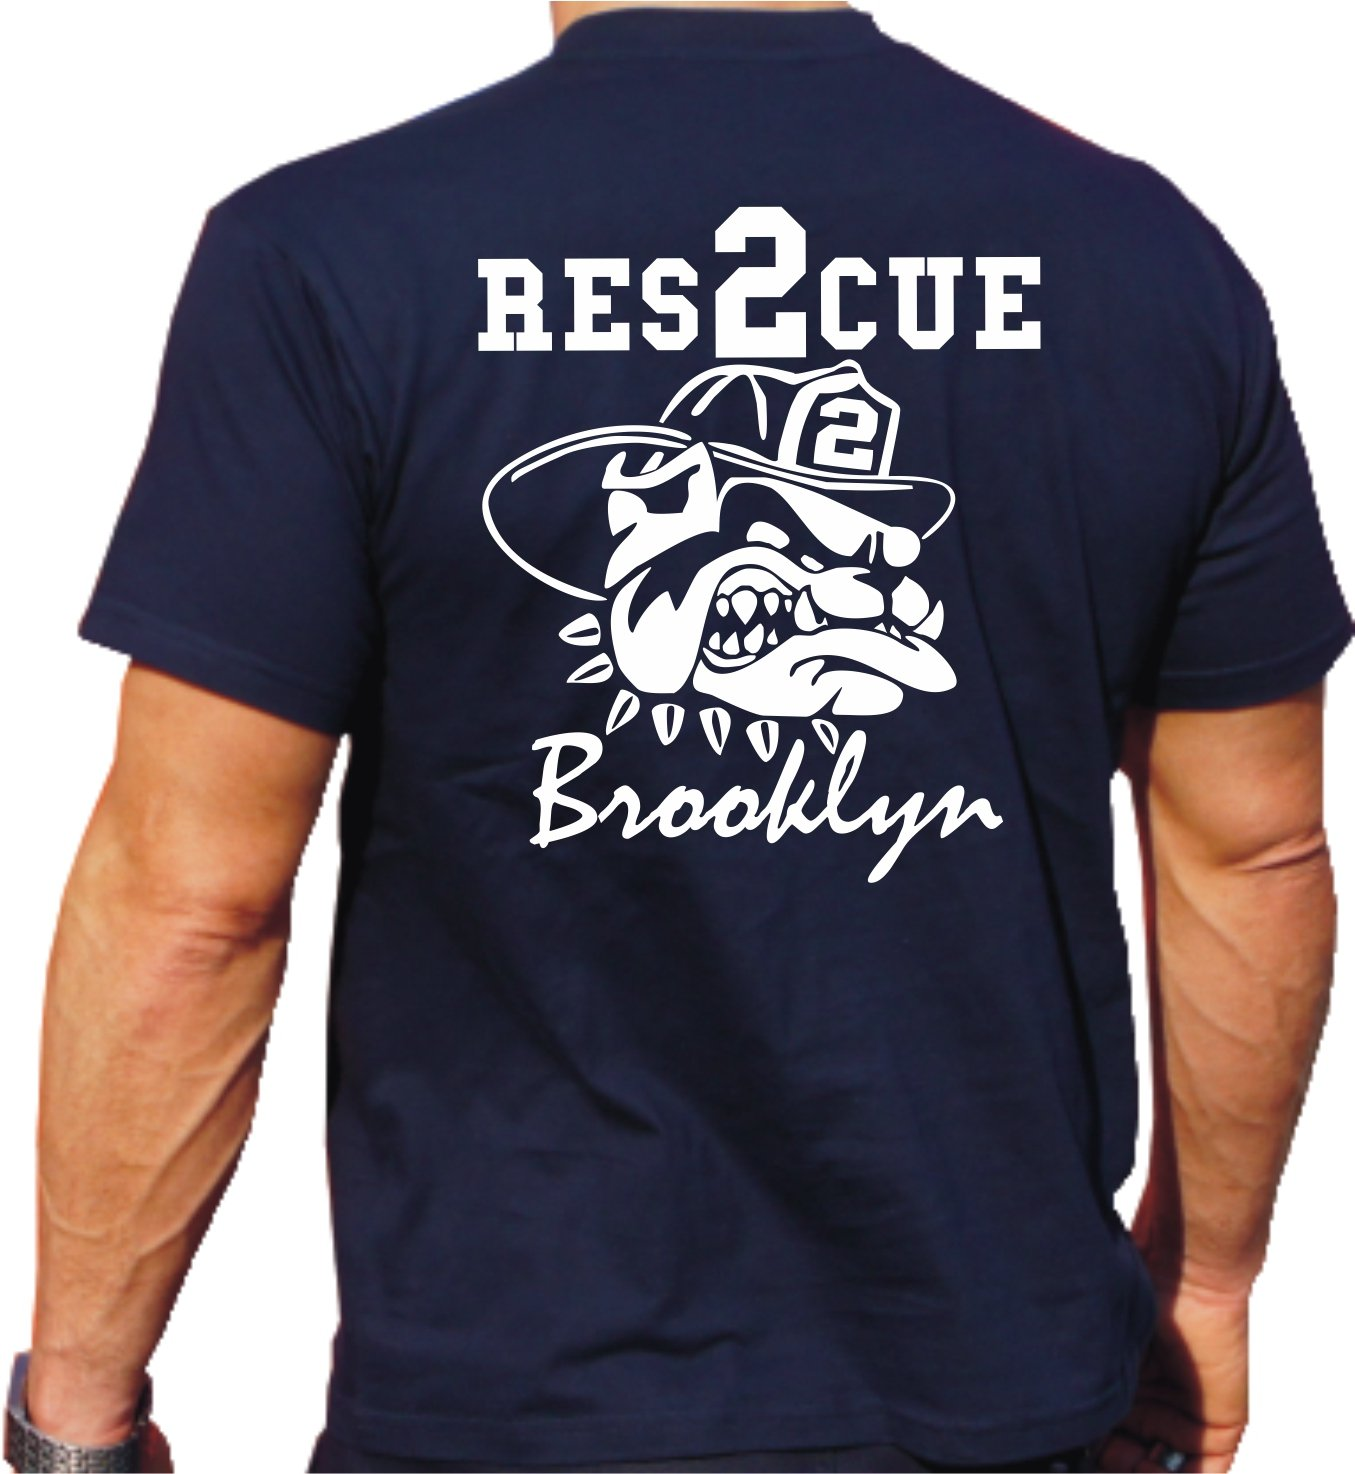 feuer1 'T-shirt Rescue 2 – con Fire Fighting Bulldog – Brooklyn – New York Vigili Del Fuoco